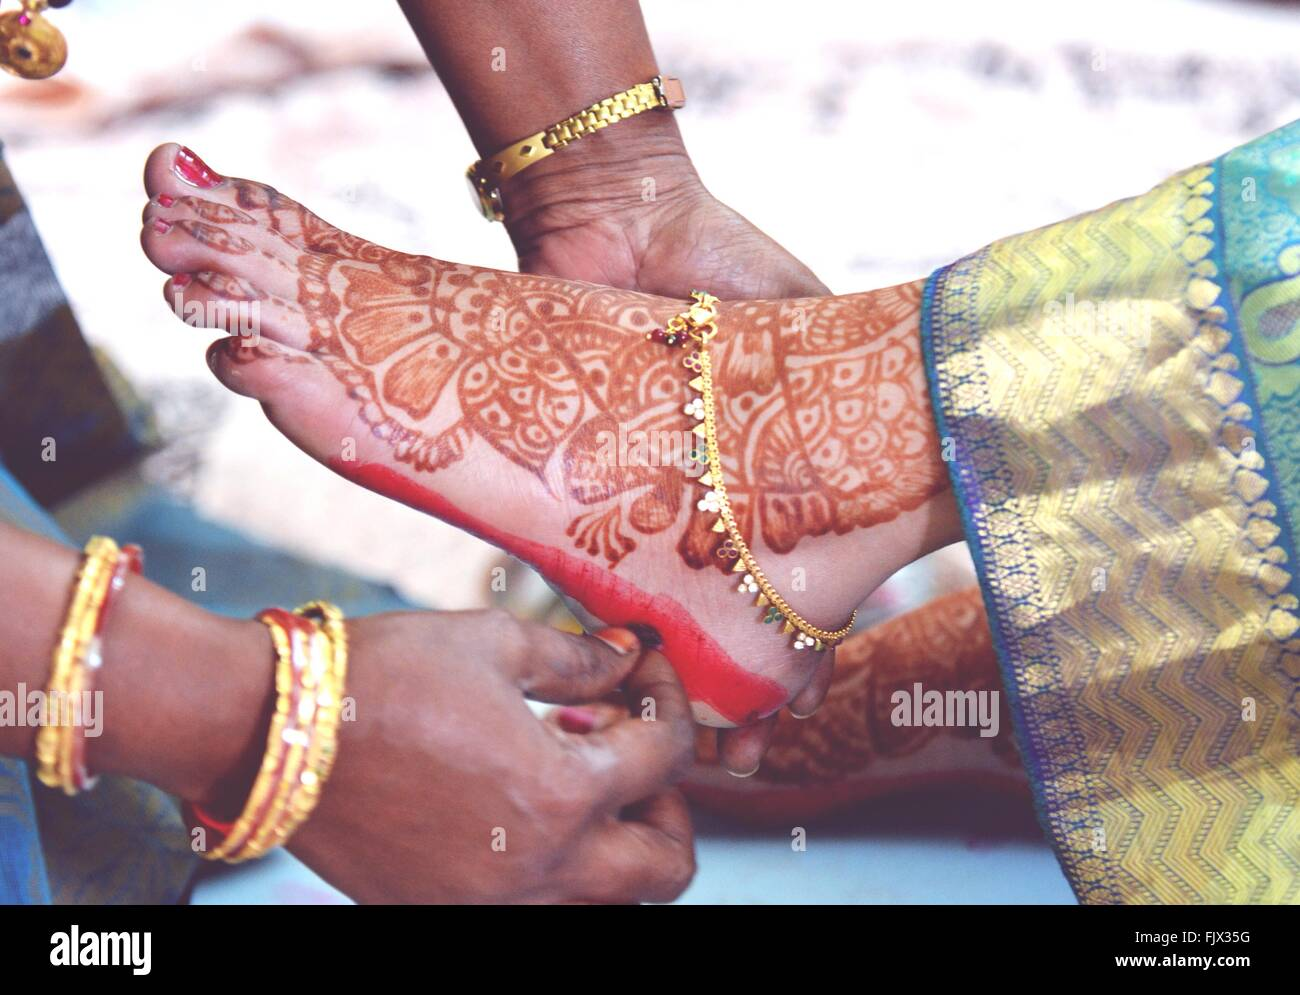 Cropped Image Of Woman Applying Alta Dye On Bride Foot - Stock Image